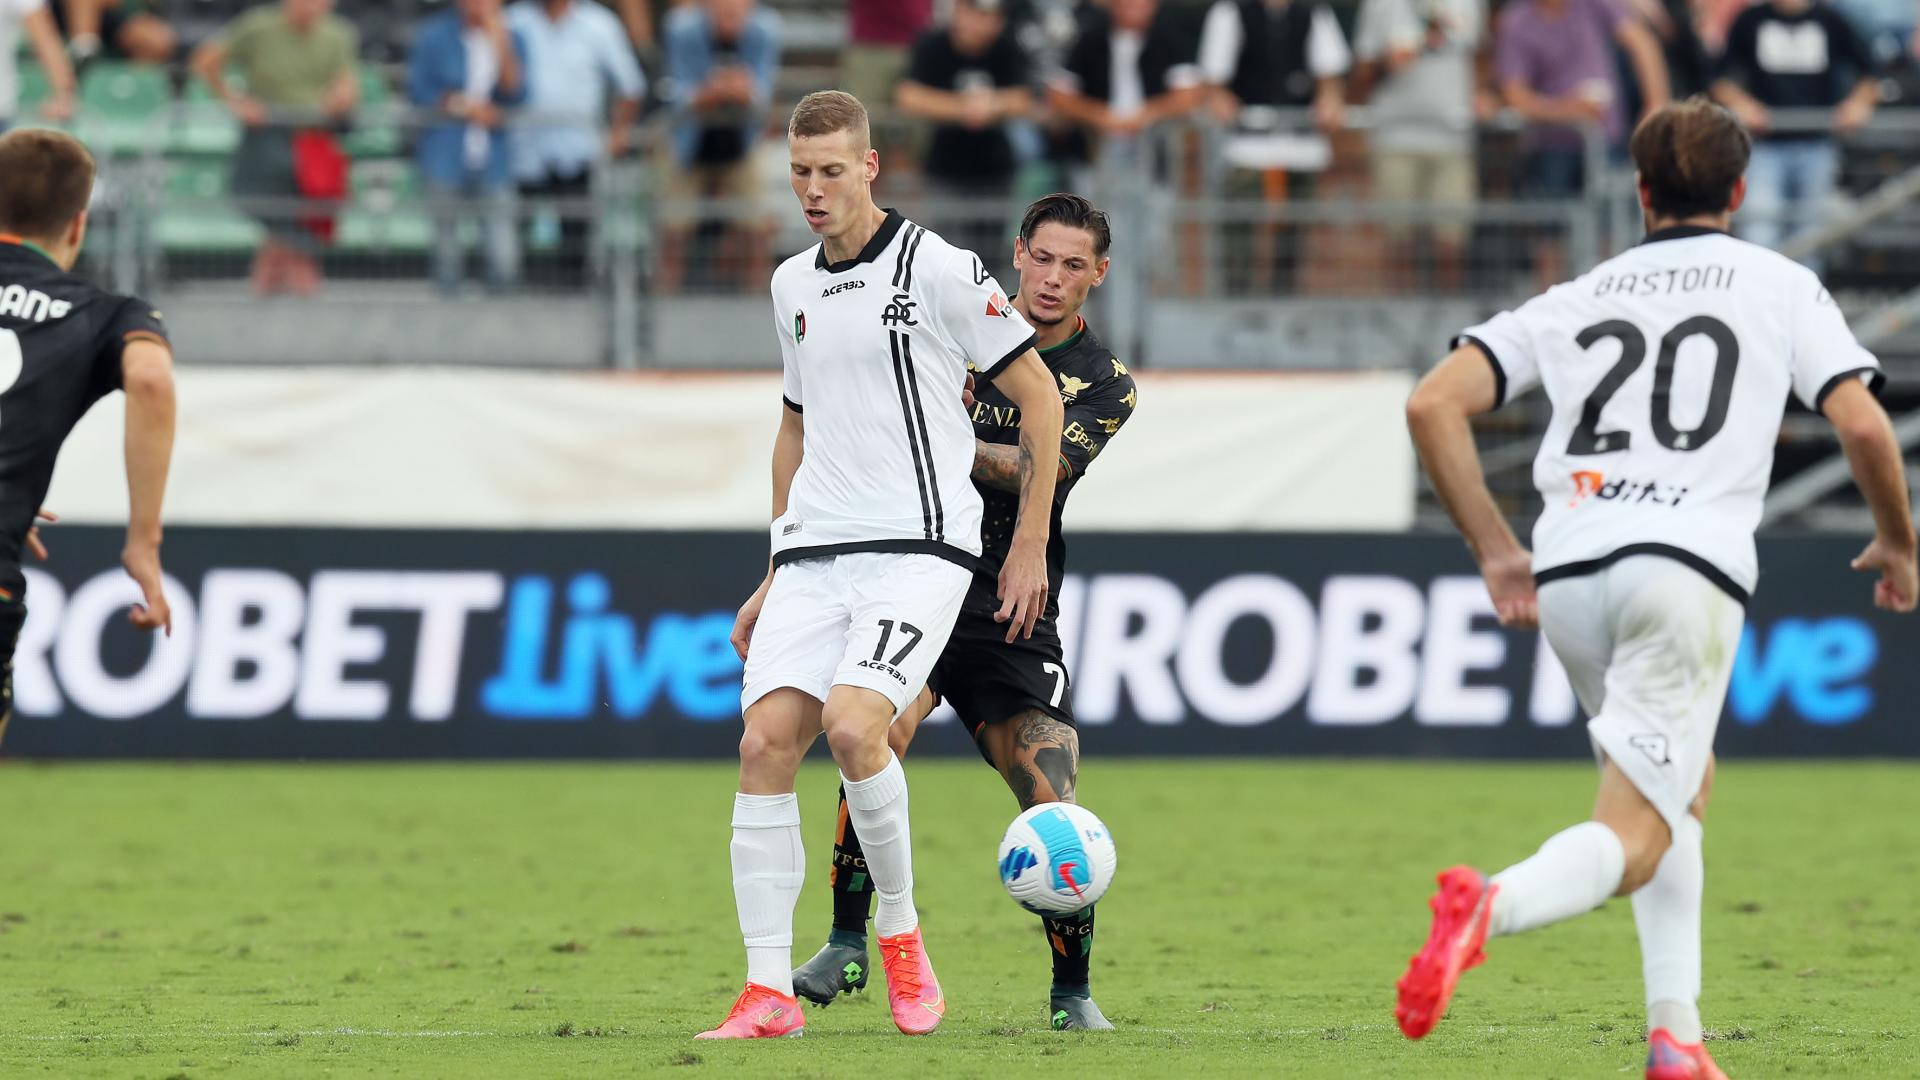 National teams: debut for Podgoreanu with Israeli. Antiste in the U21 team